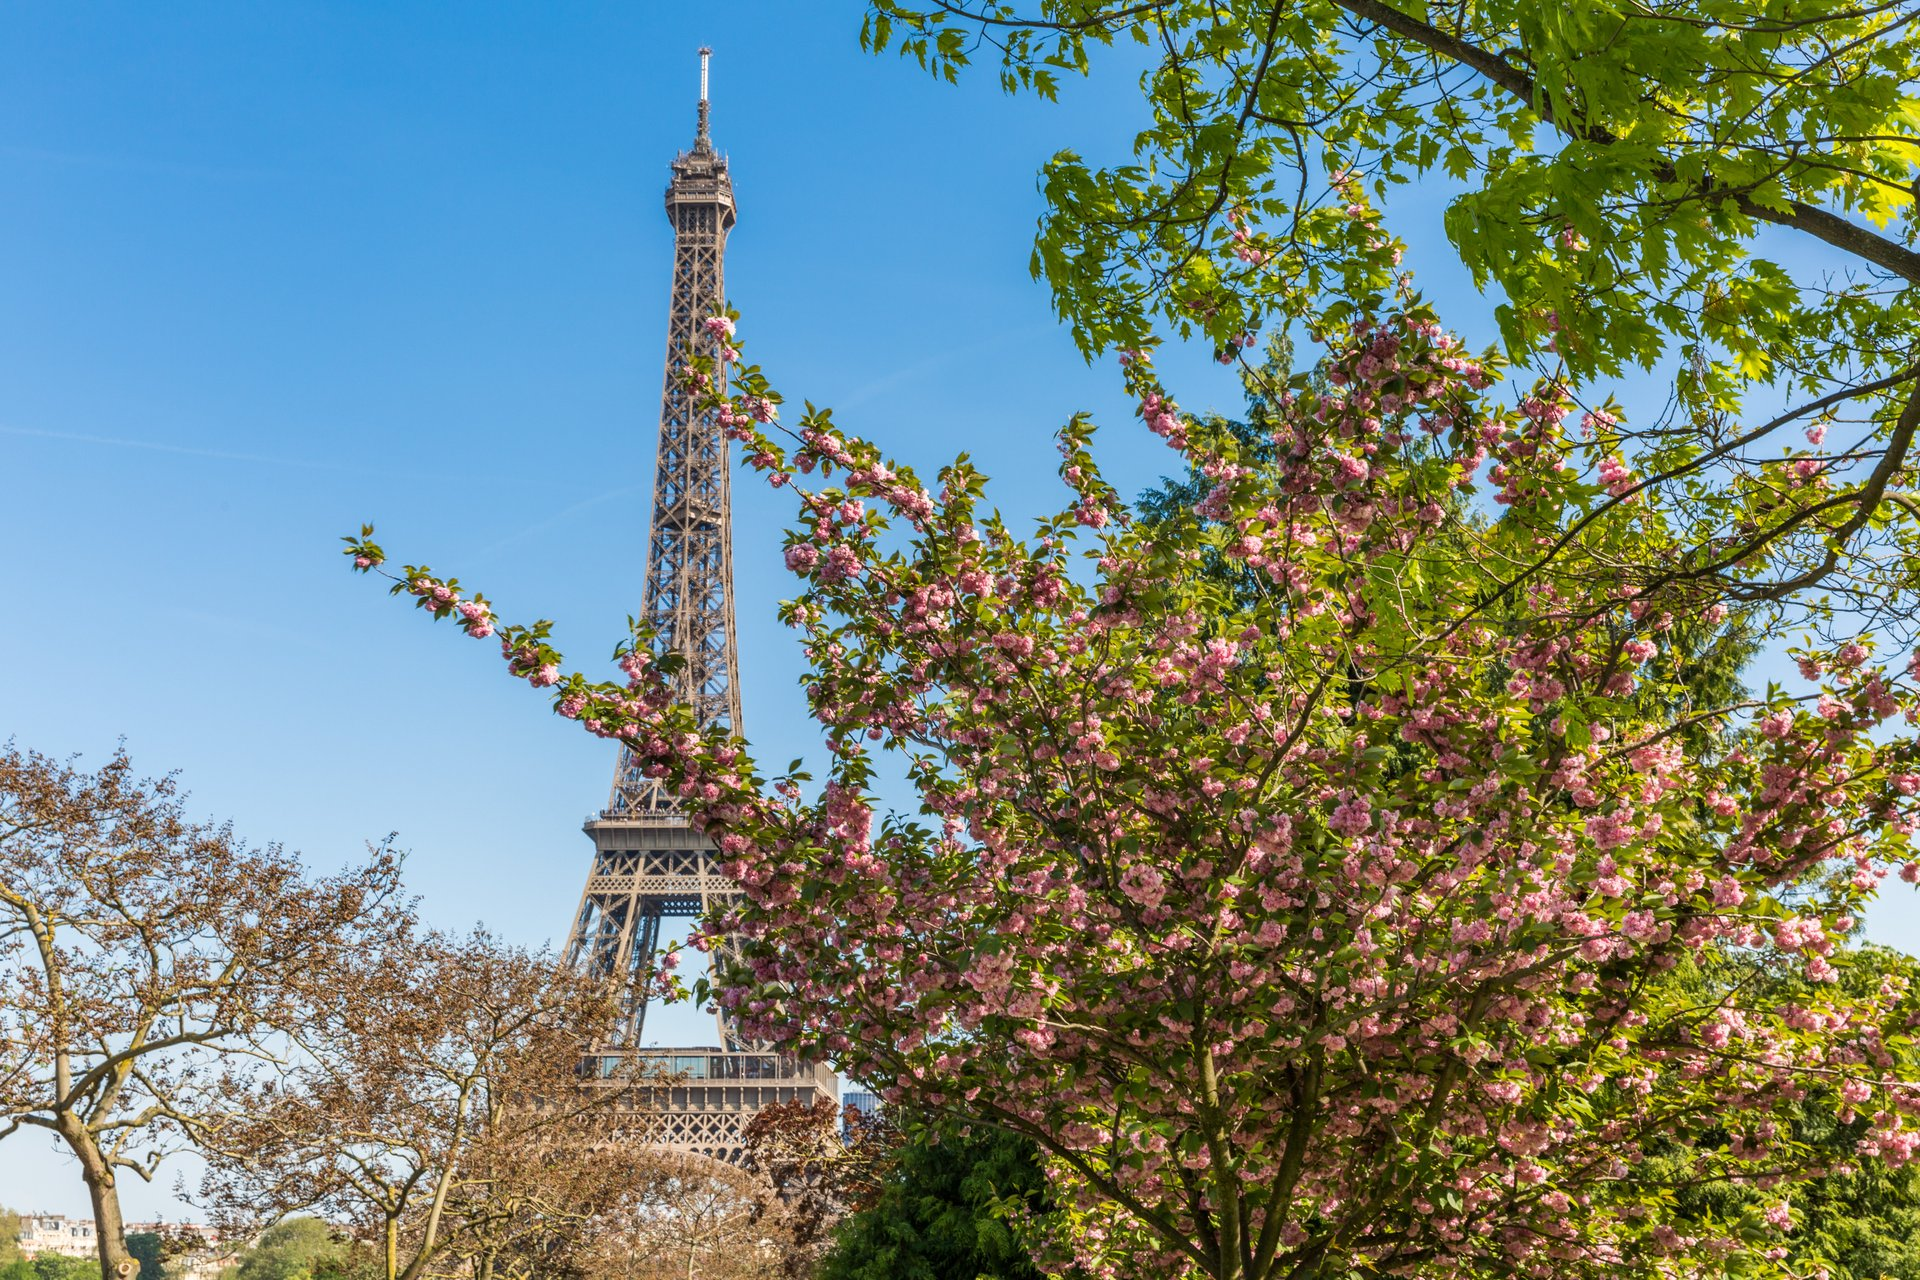 Cherry blossom and Eiffel Tower 2019